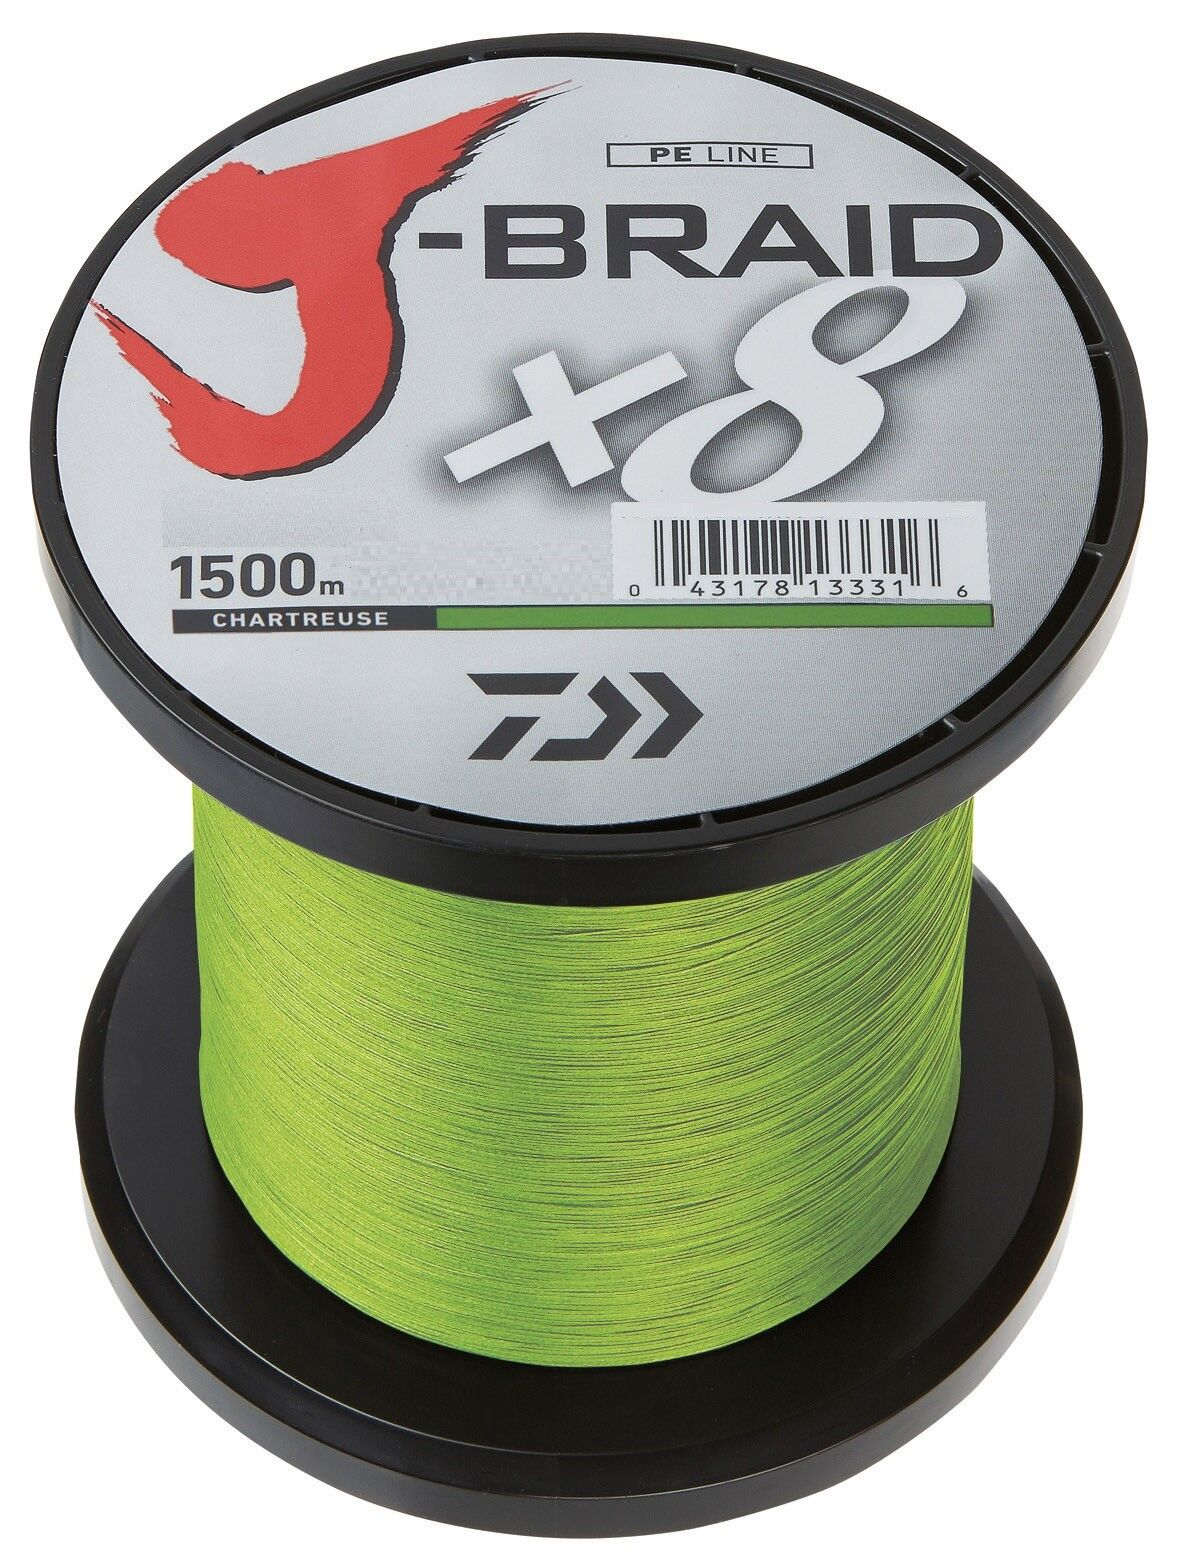 Daiwa J-Braid x8 0,06mm 4,00kg 1500m Chartreuse Braided Stbague Fishing Line